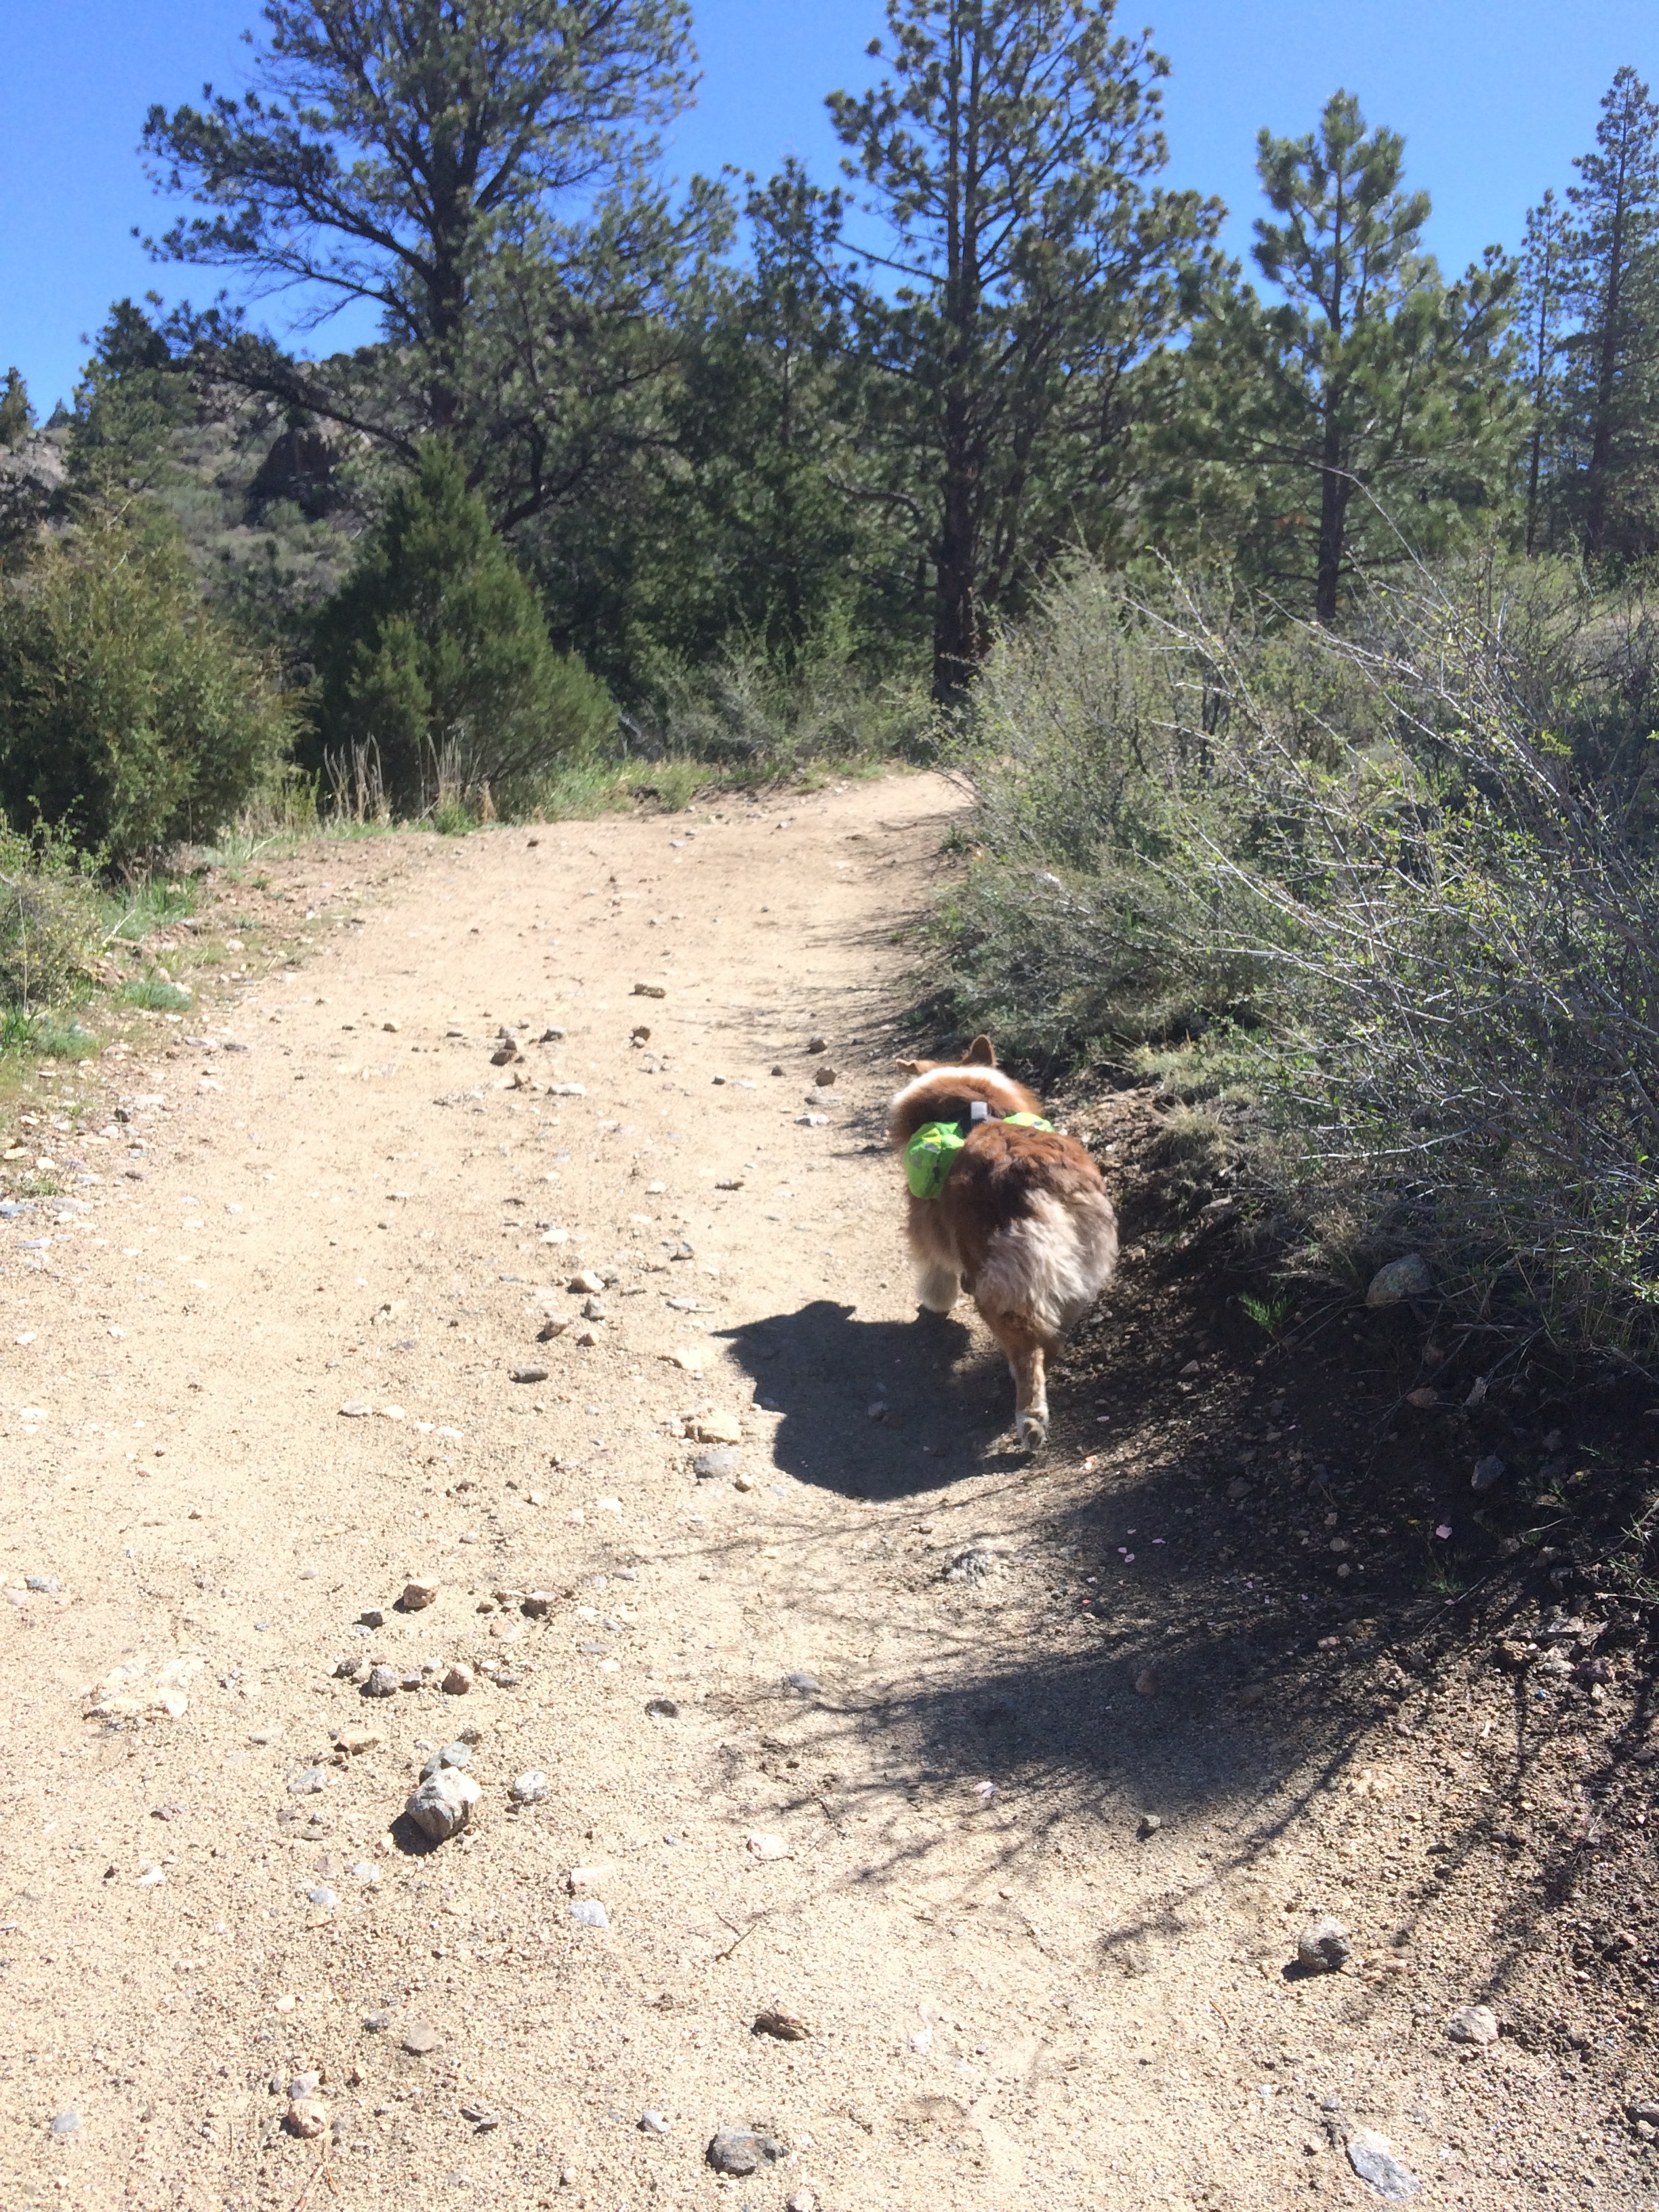 Roo is always up for a good adventure!